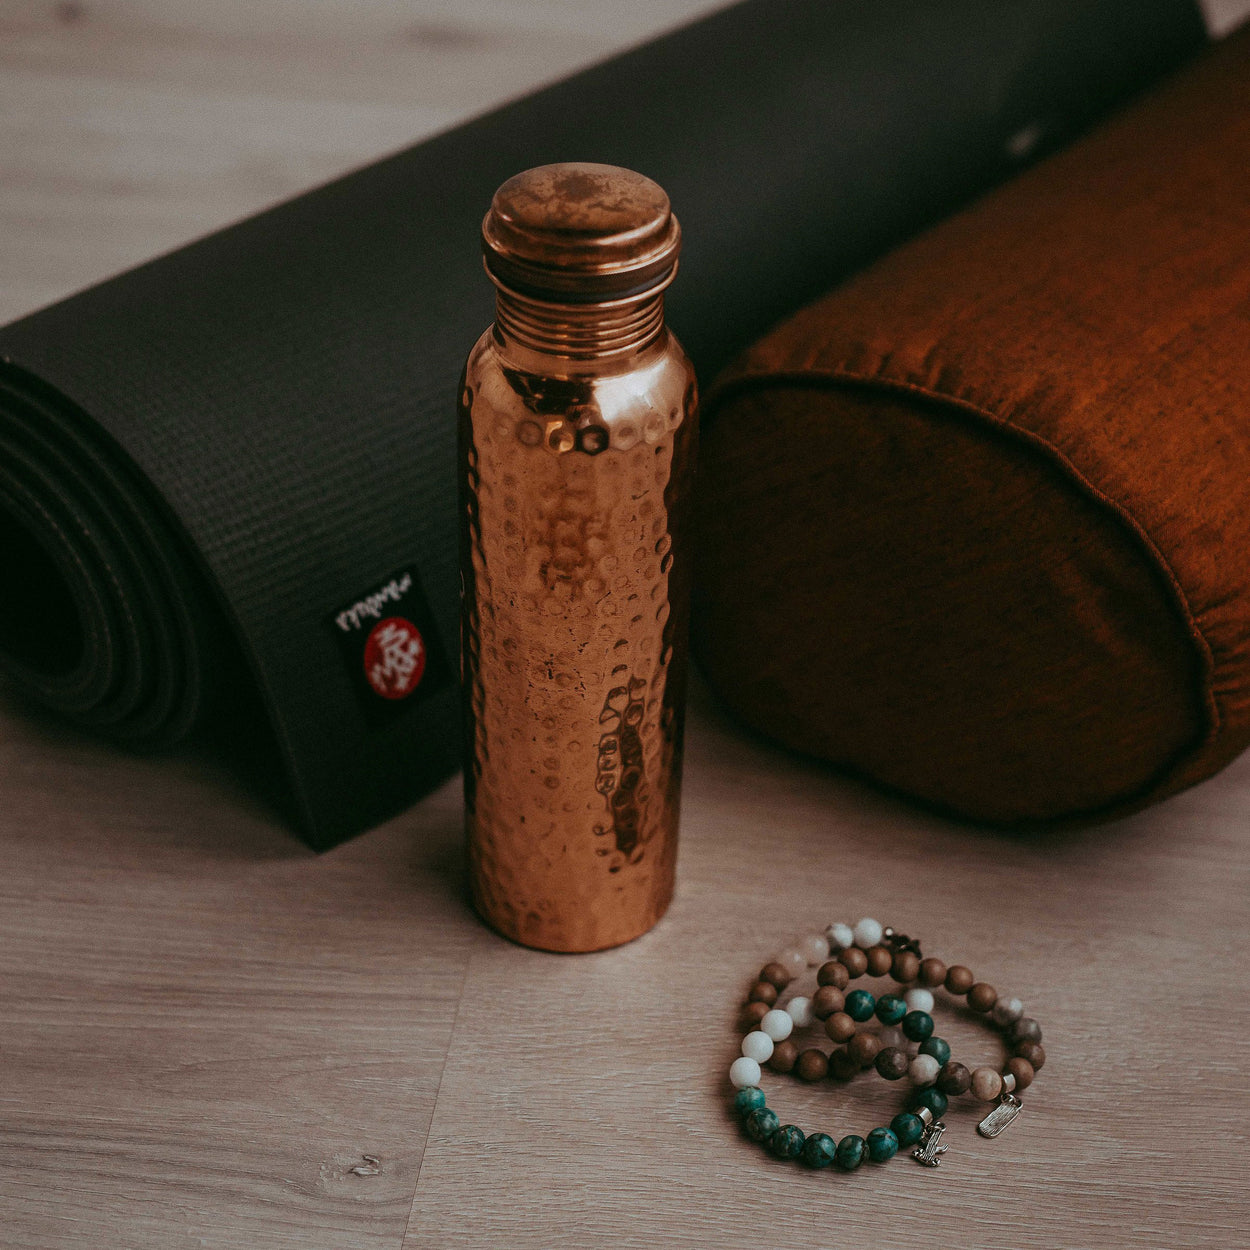 The Better Farm Co's sustinable copper water bottle rests near a yoga mat and bracelets on the floor, the perfect water bottle for an eco-friendly grocery run. Copper has many benefits. including  ayurvedic healing, increasing immunity, aiding in gut health, increasing metabolism, providing arthritic support and improving digestion.